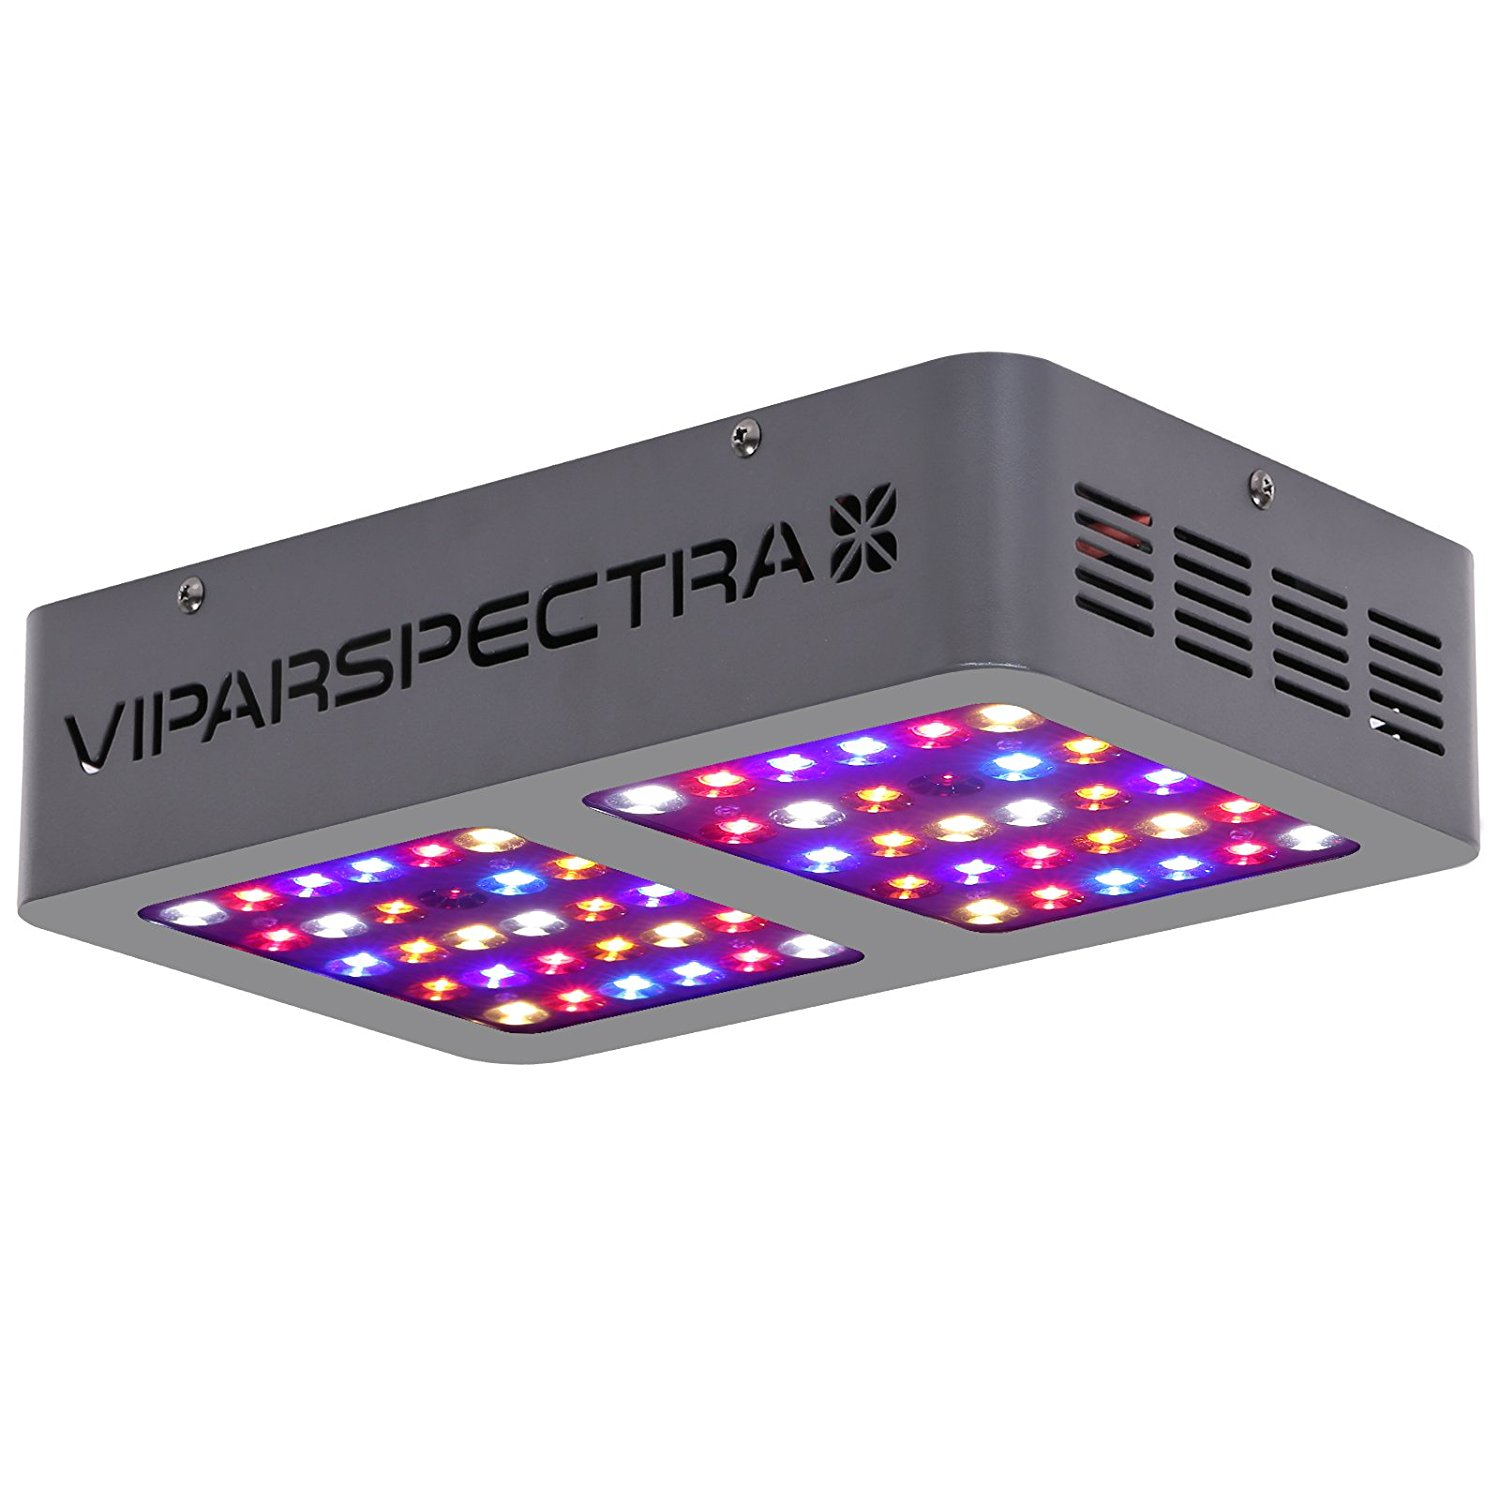 6, VIPARSPECTRA 300W LED Grow Light (Reflector-Series)